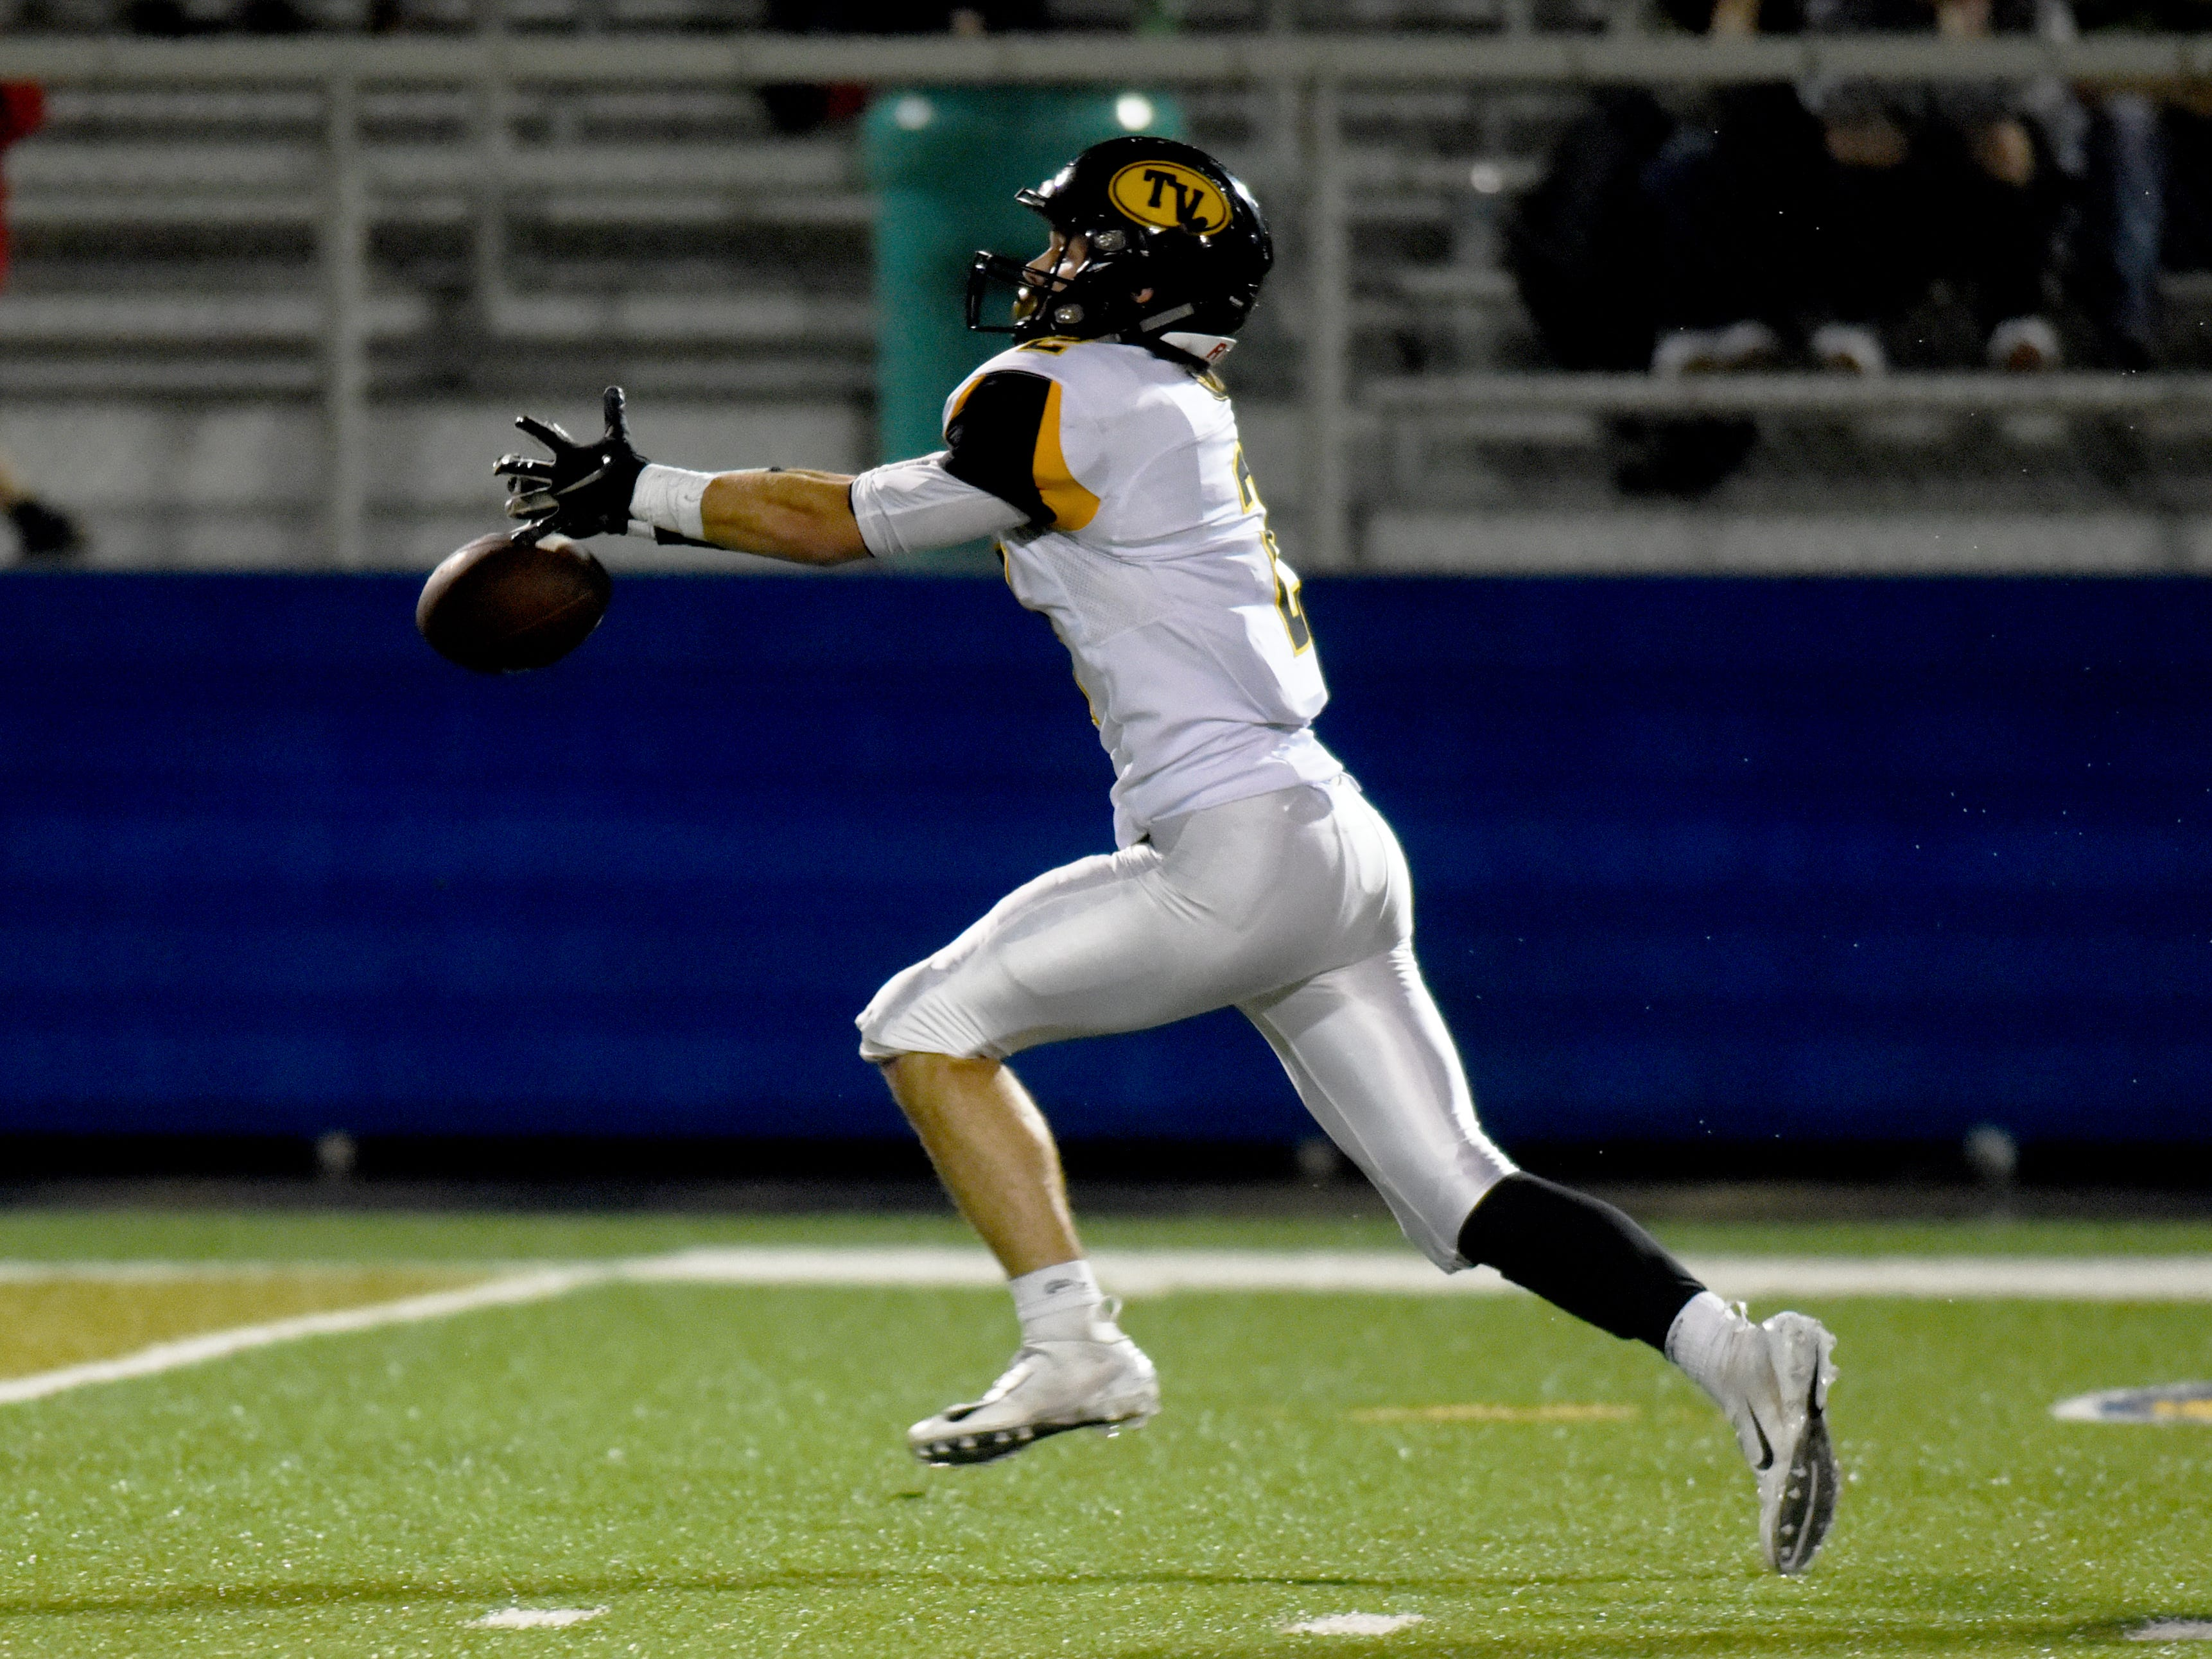 Tri-Valley's Blayze Taylor barely misses making a long reception on Friday night against Philo.